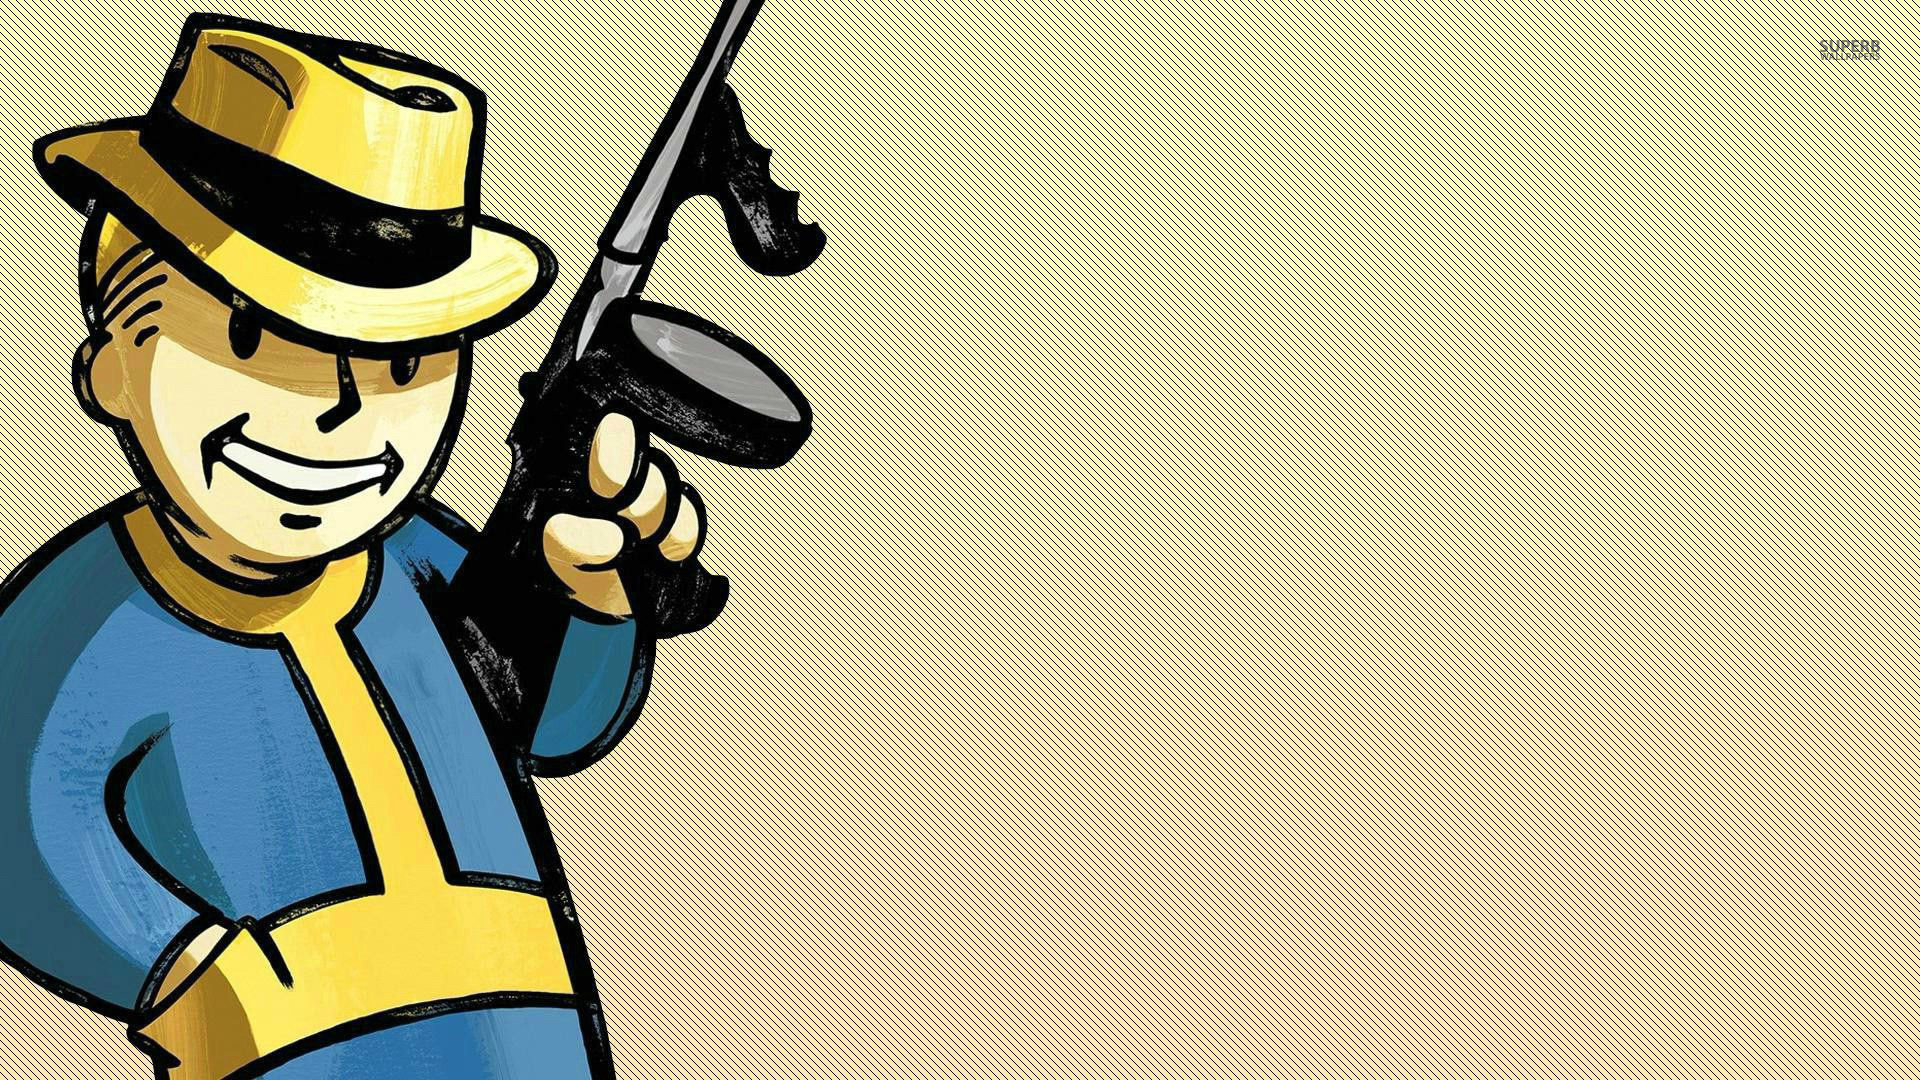 Vault boy wallpaper 73 images - Amazing wallpapers for boys ...